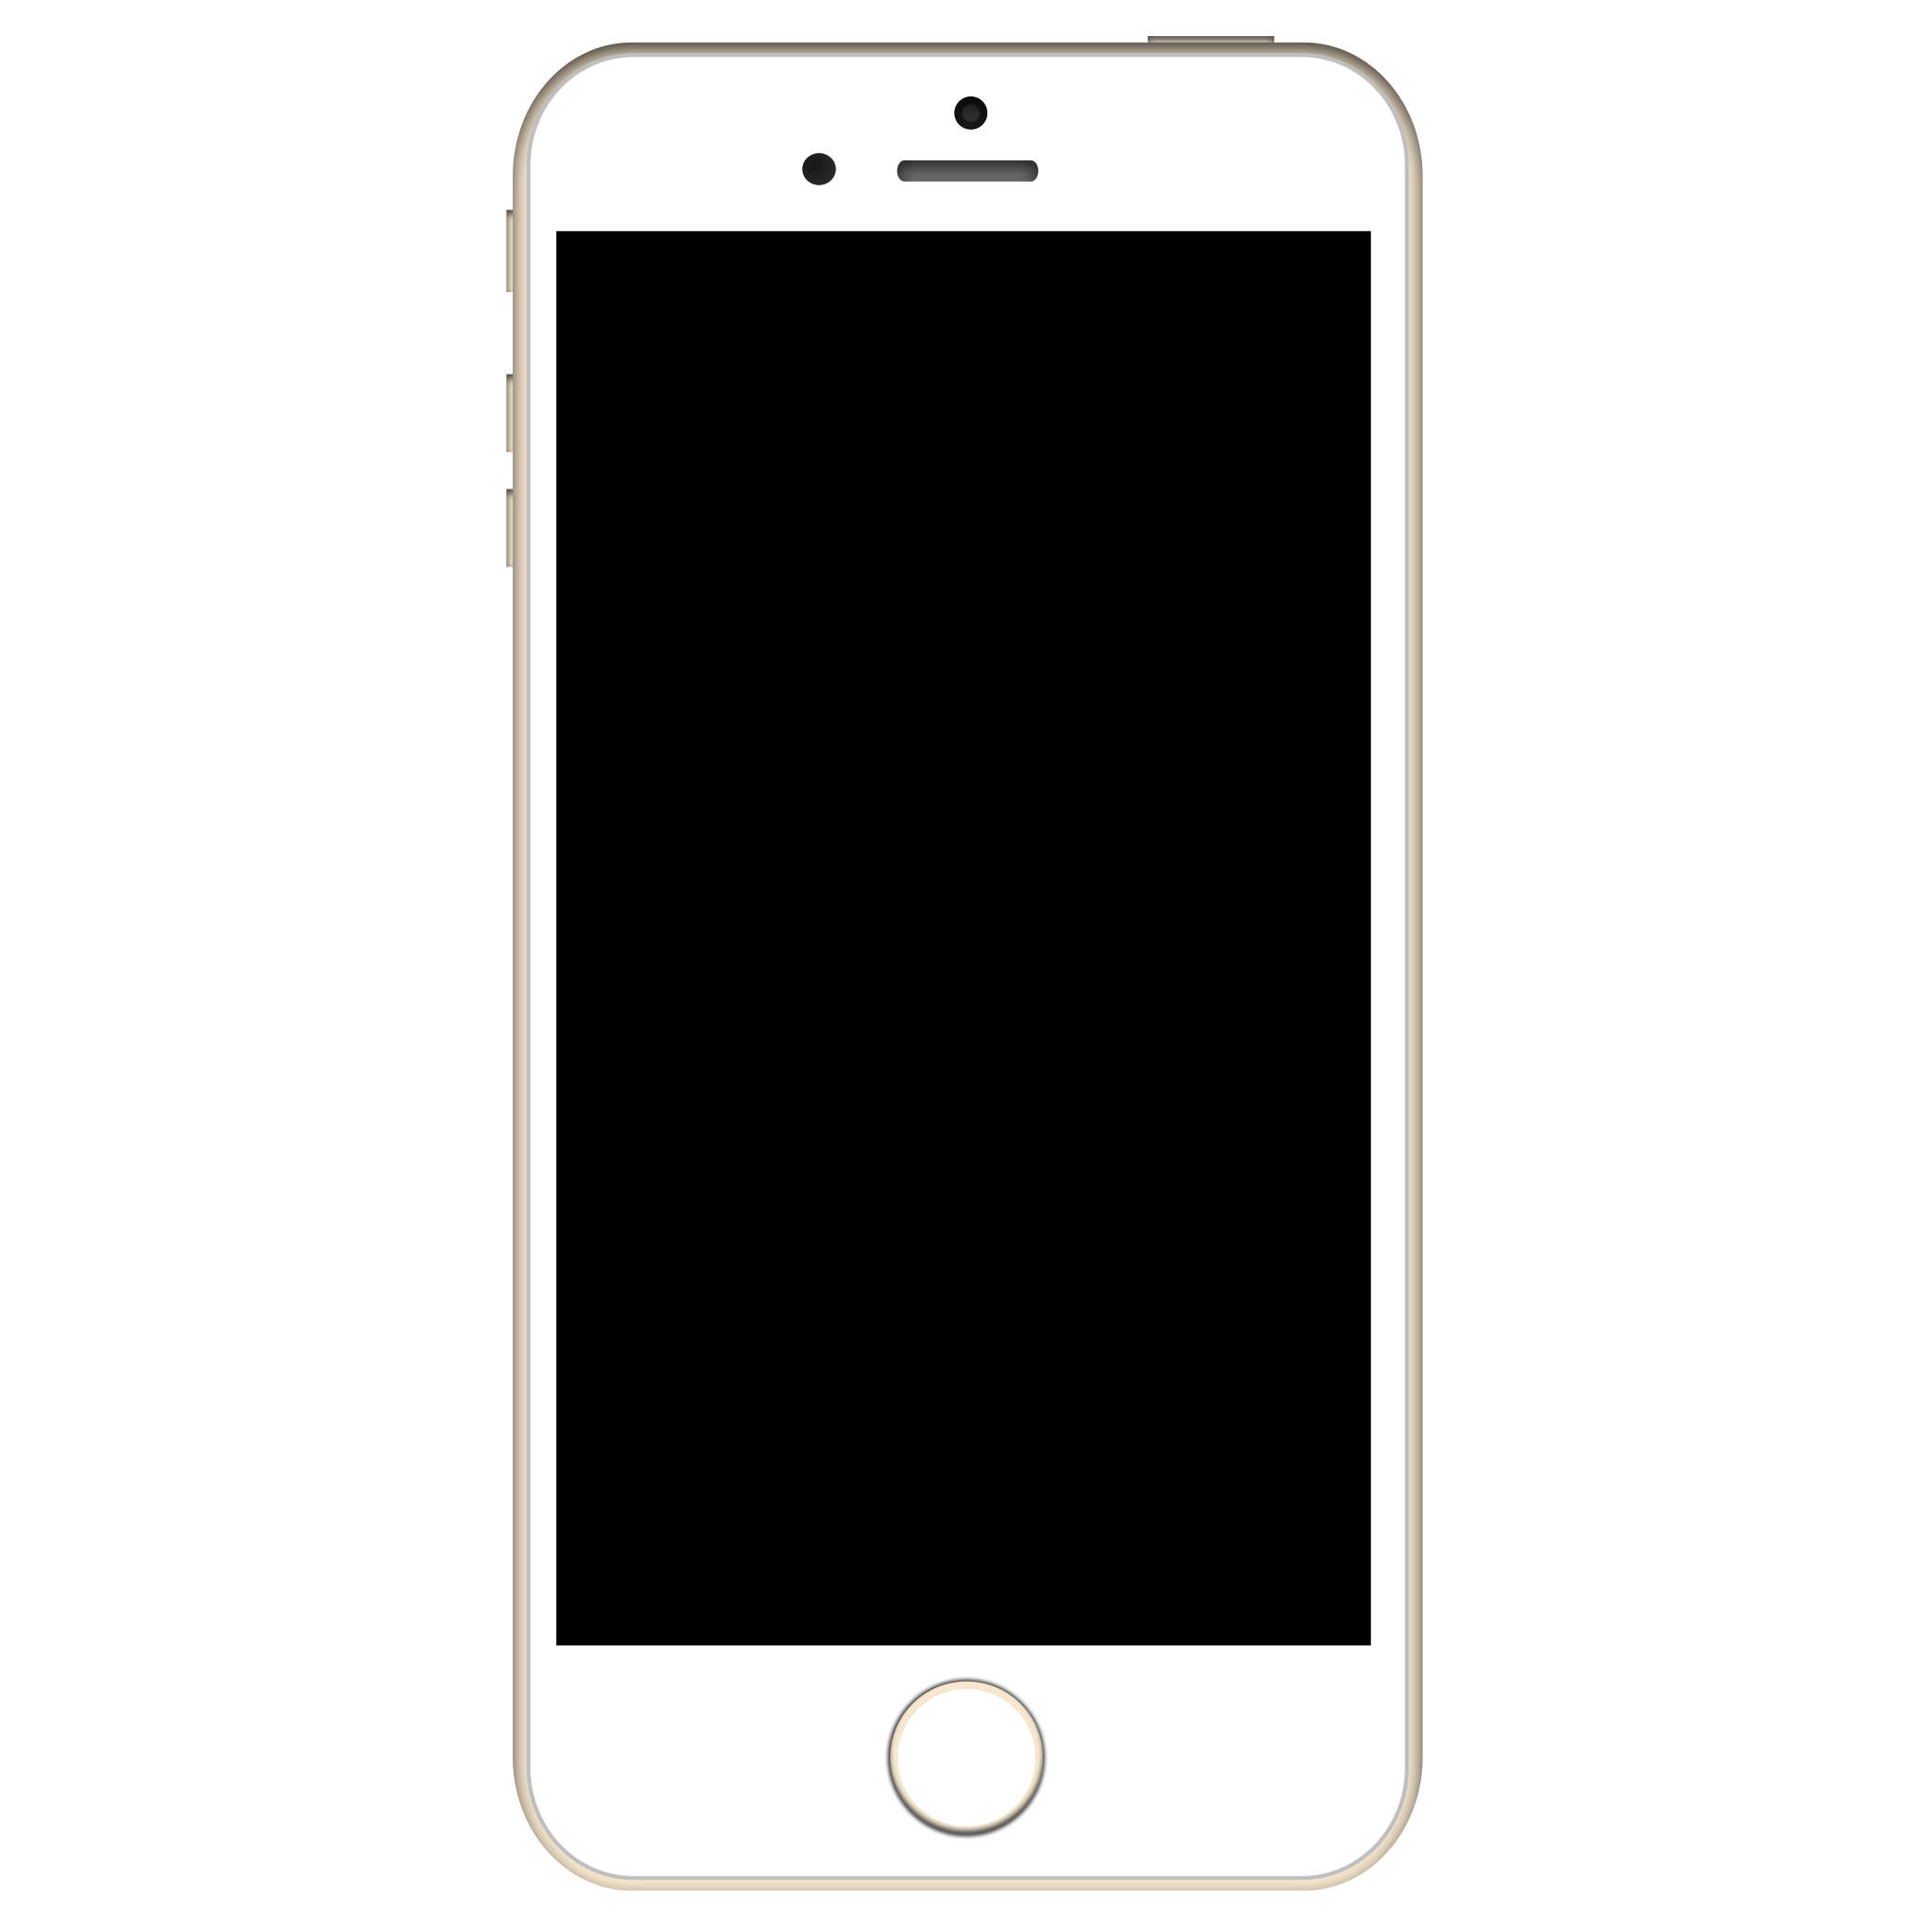 5s clipart png jpg transparent download Iphone 5s Gold Png Www.galleryhip - Free Clipart jpg transparent download